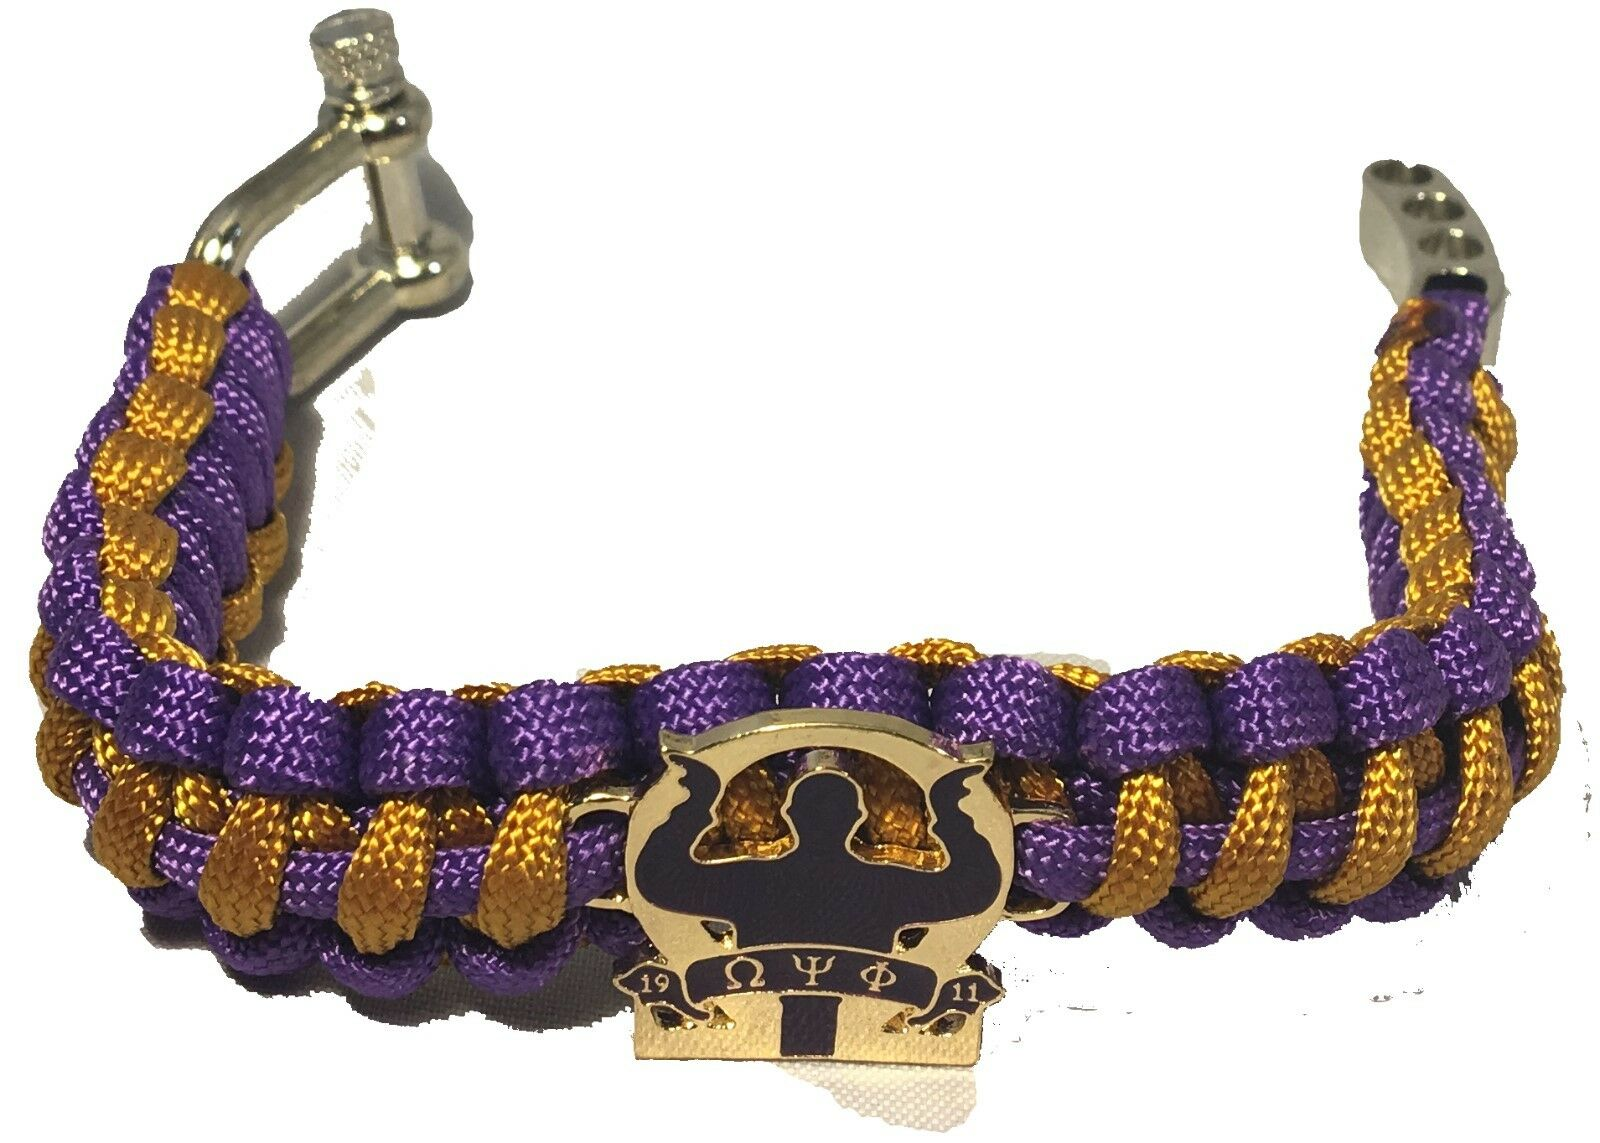 Omega Psi Phi Fraternity Survival Paracord Bracelet With